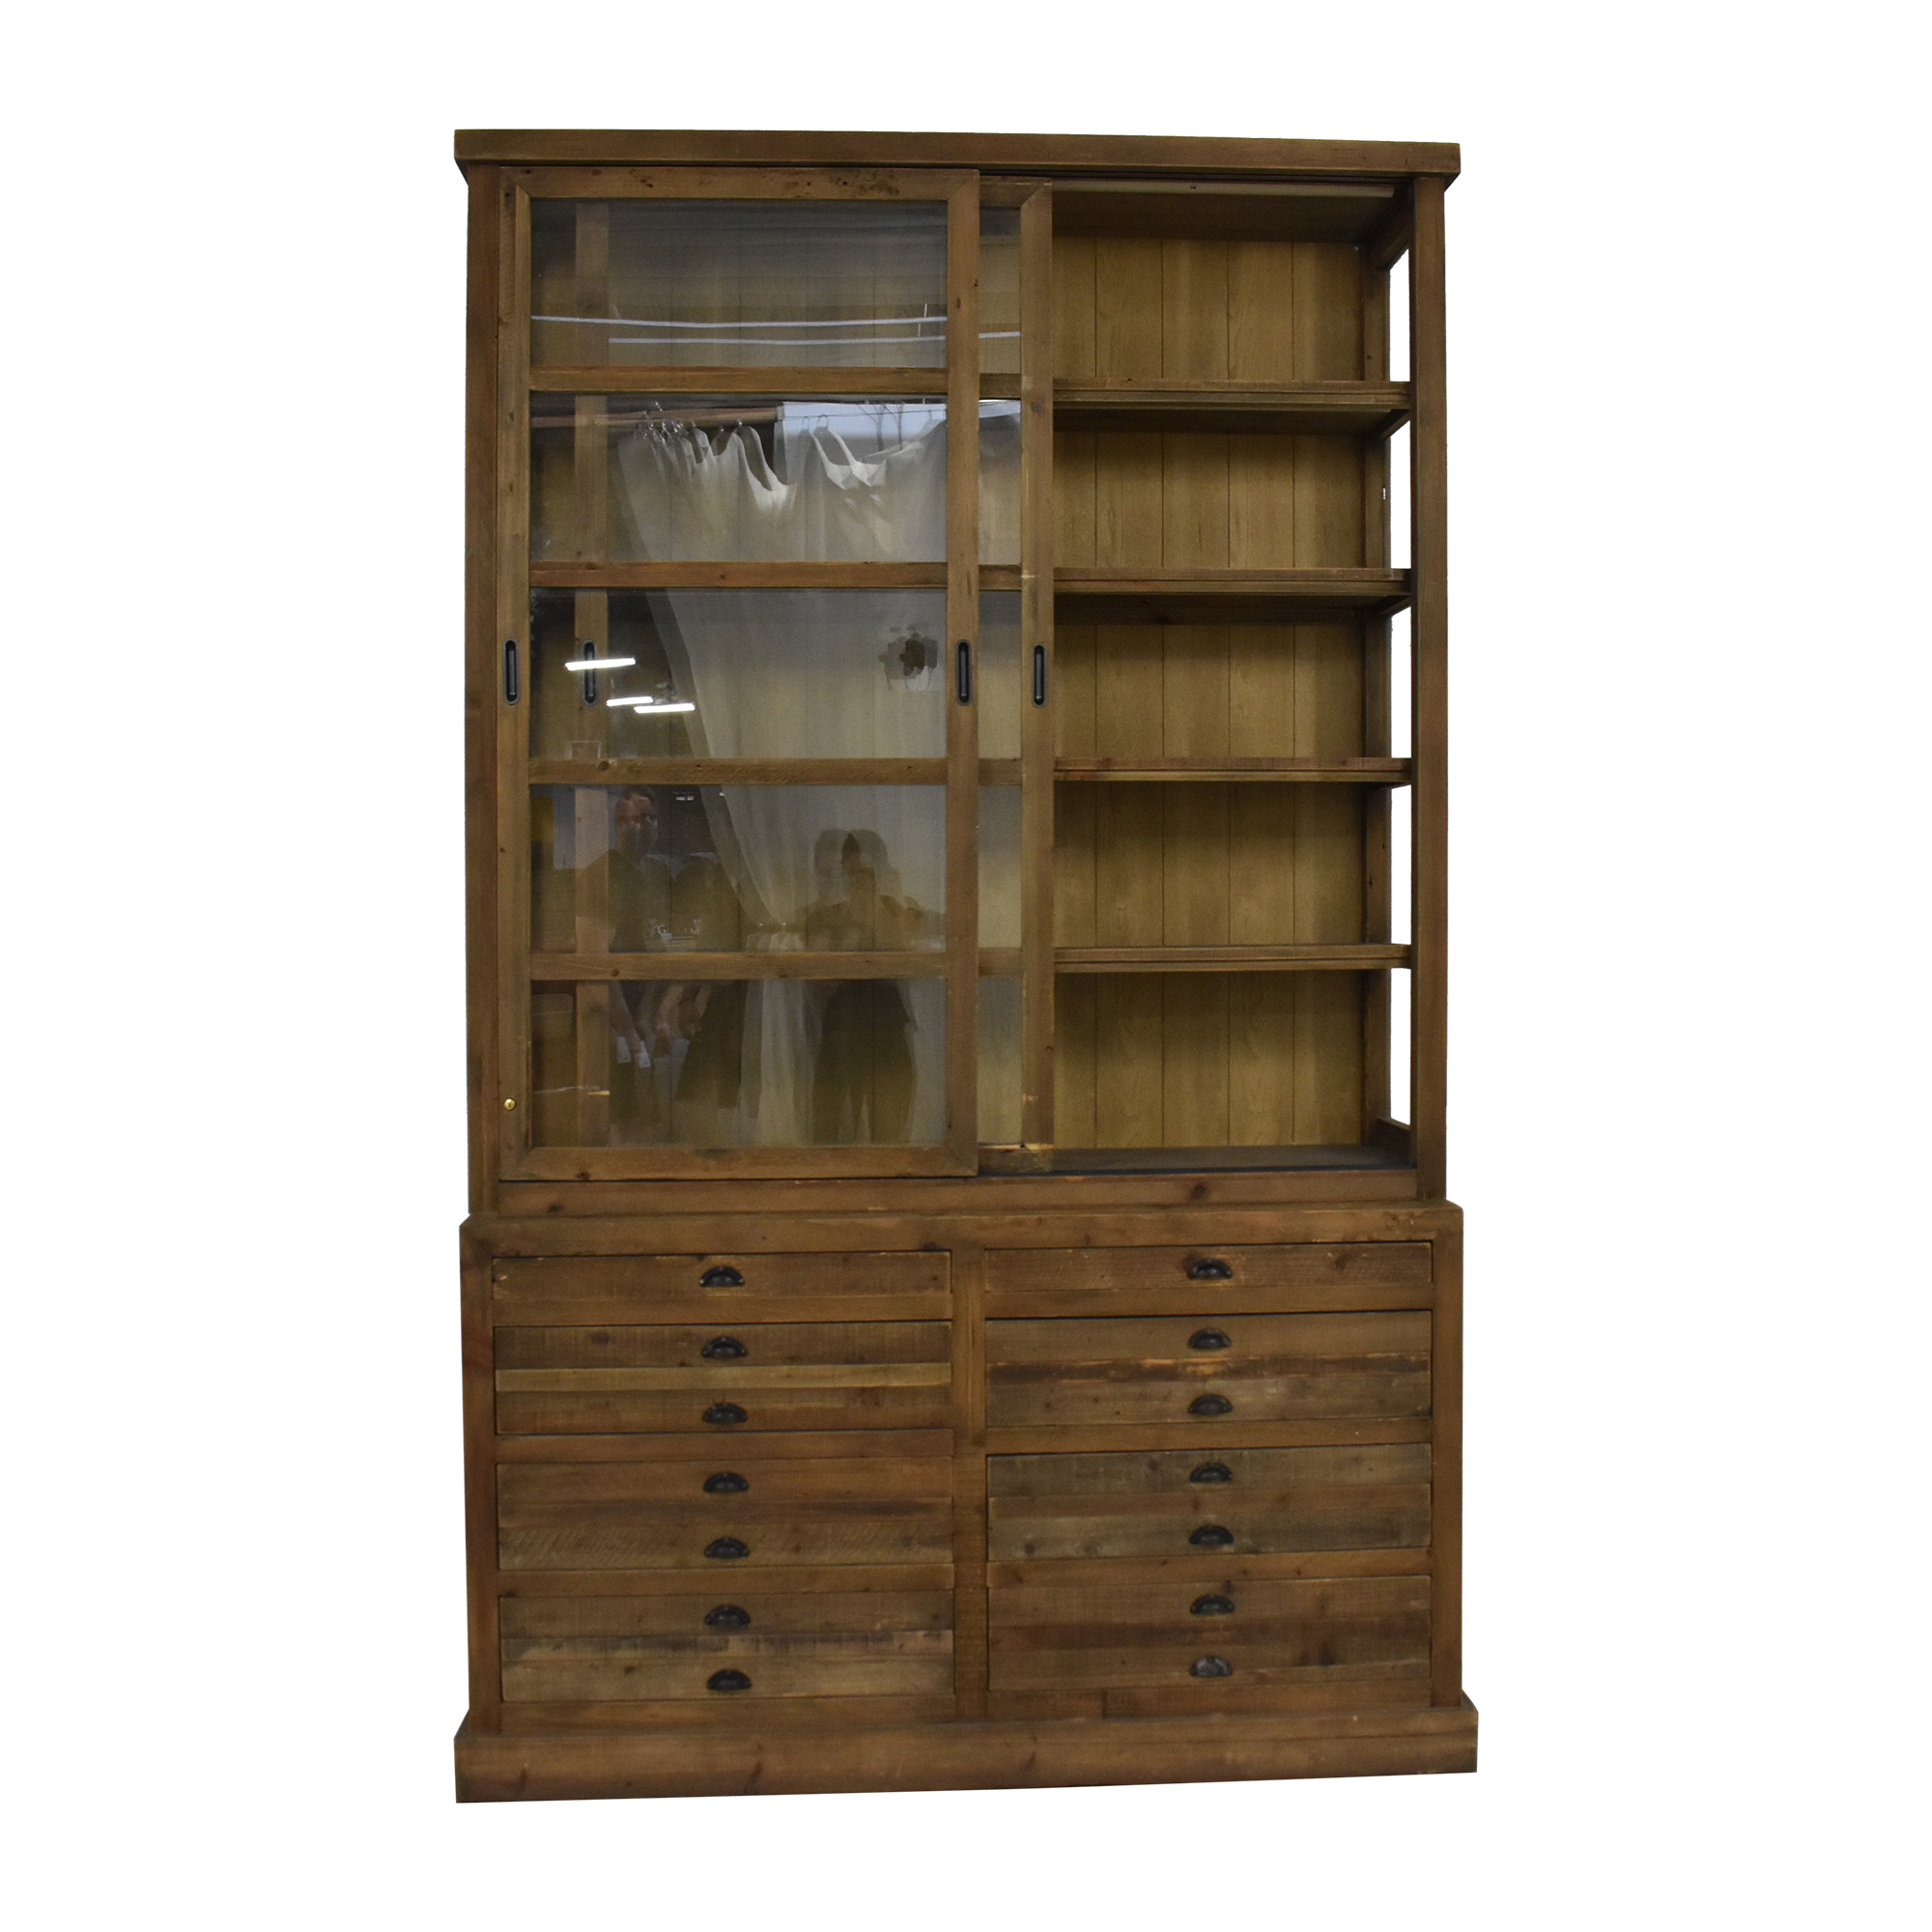 Restoration Hardware Restoration Hardware Printmaker's Sideboard and Hutch dimensions